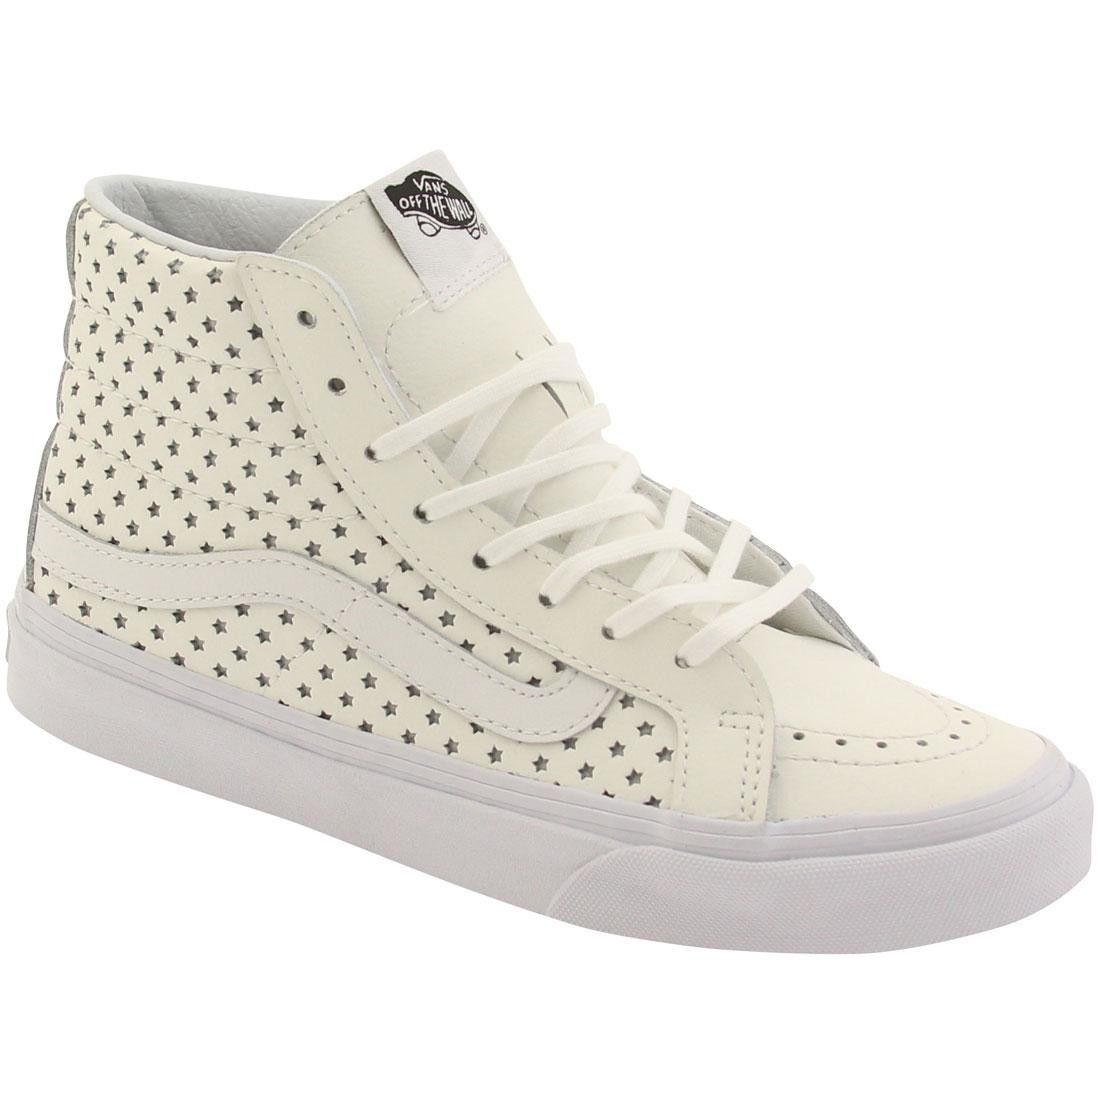 Primary image for Vans SK8 HI SLIM PERF STARS WHITE Skate Shoes MENS 6.5 WOMENS 8 CLASSICS NIB